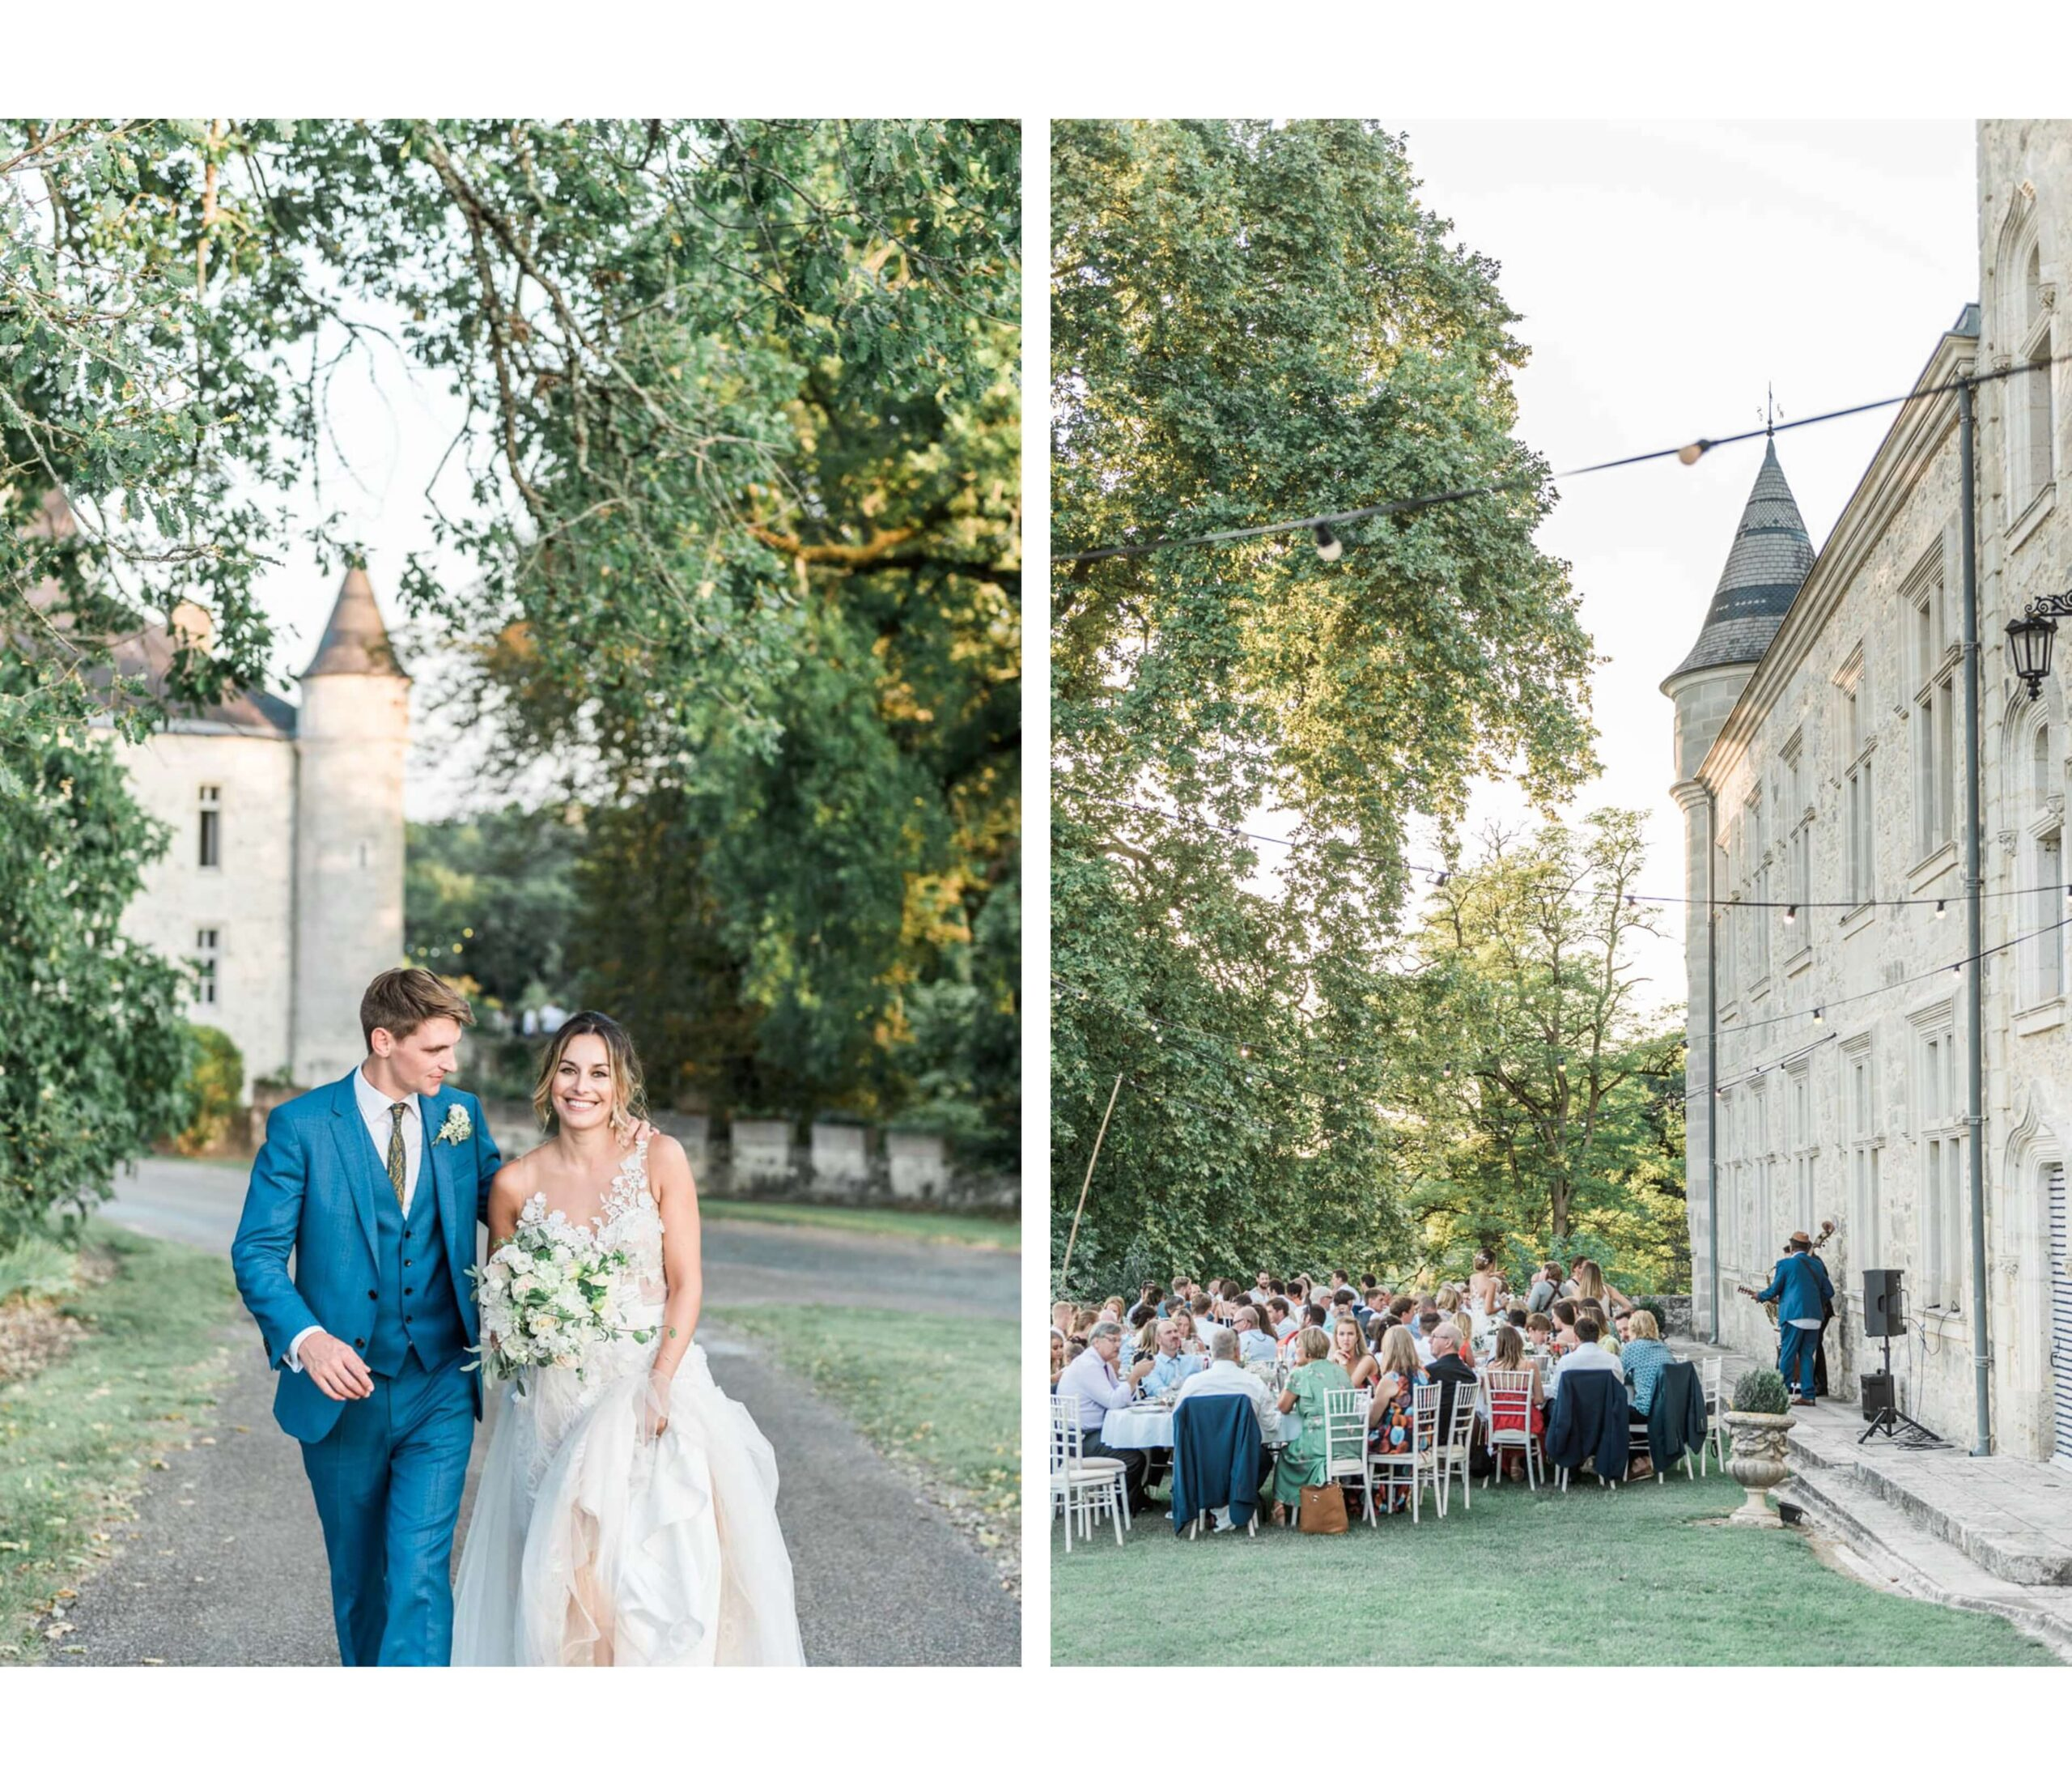 Chateau de Lisse light and airy castle venue in France